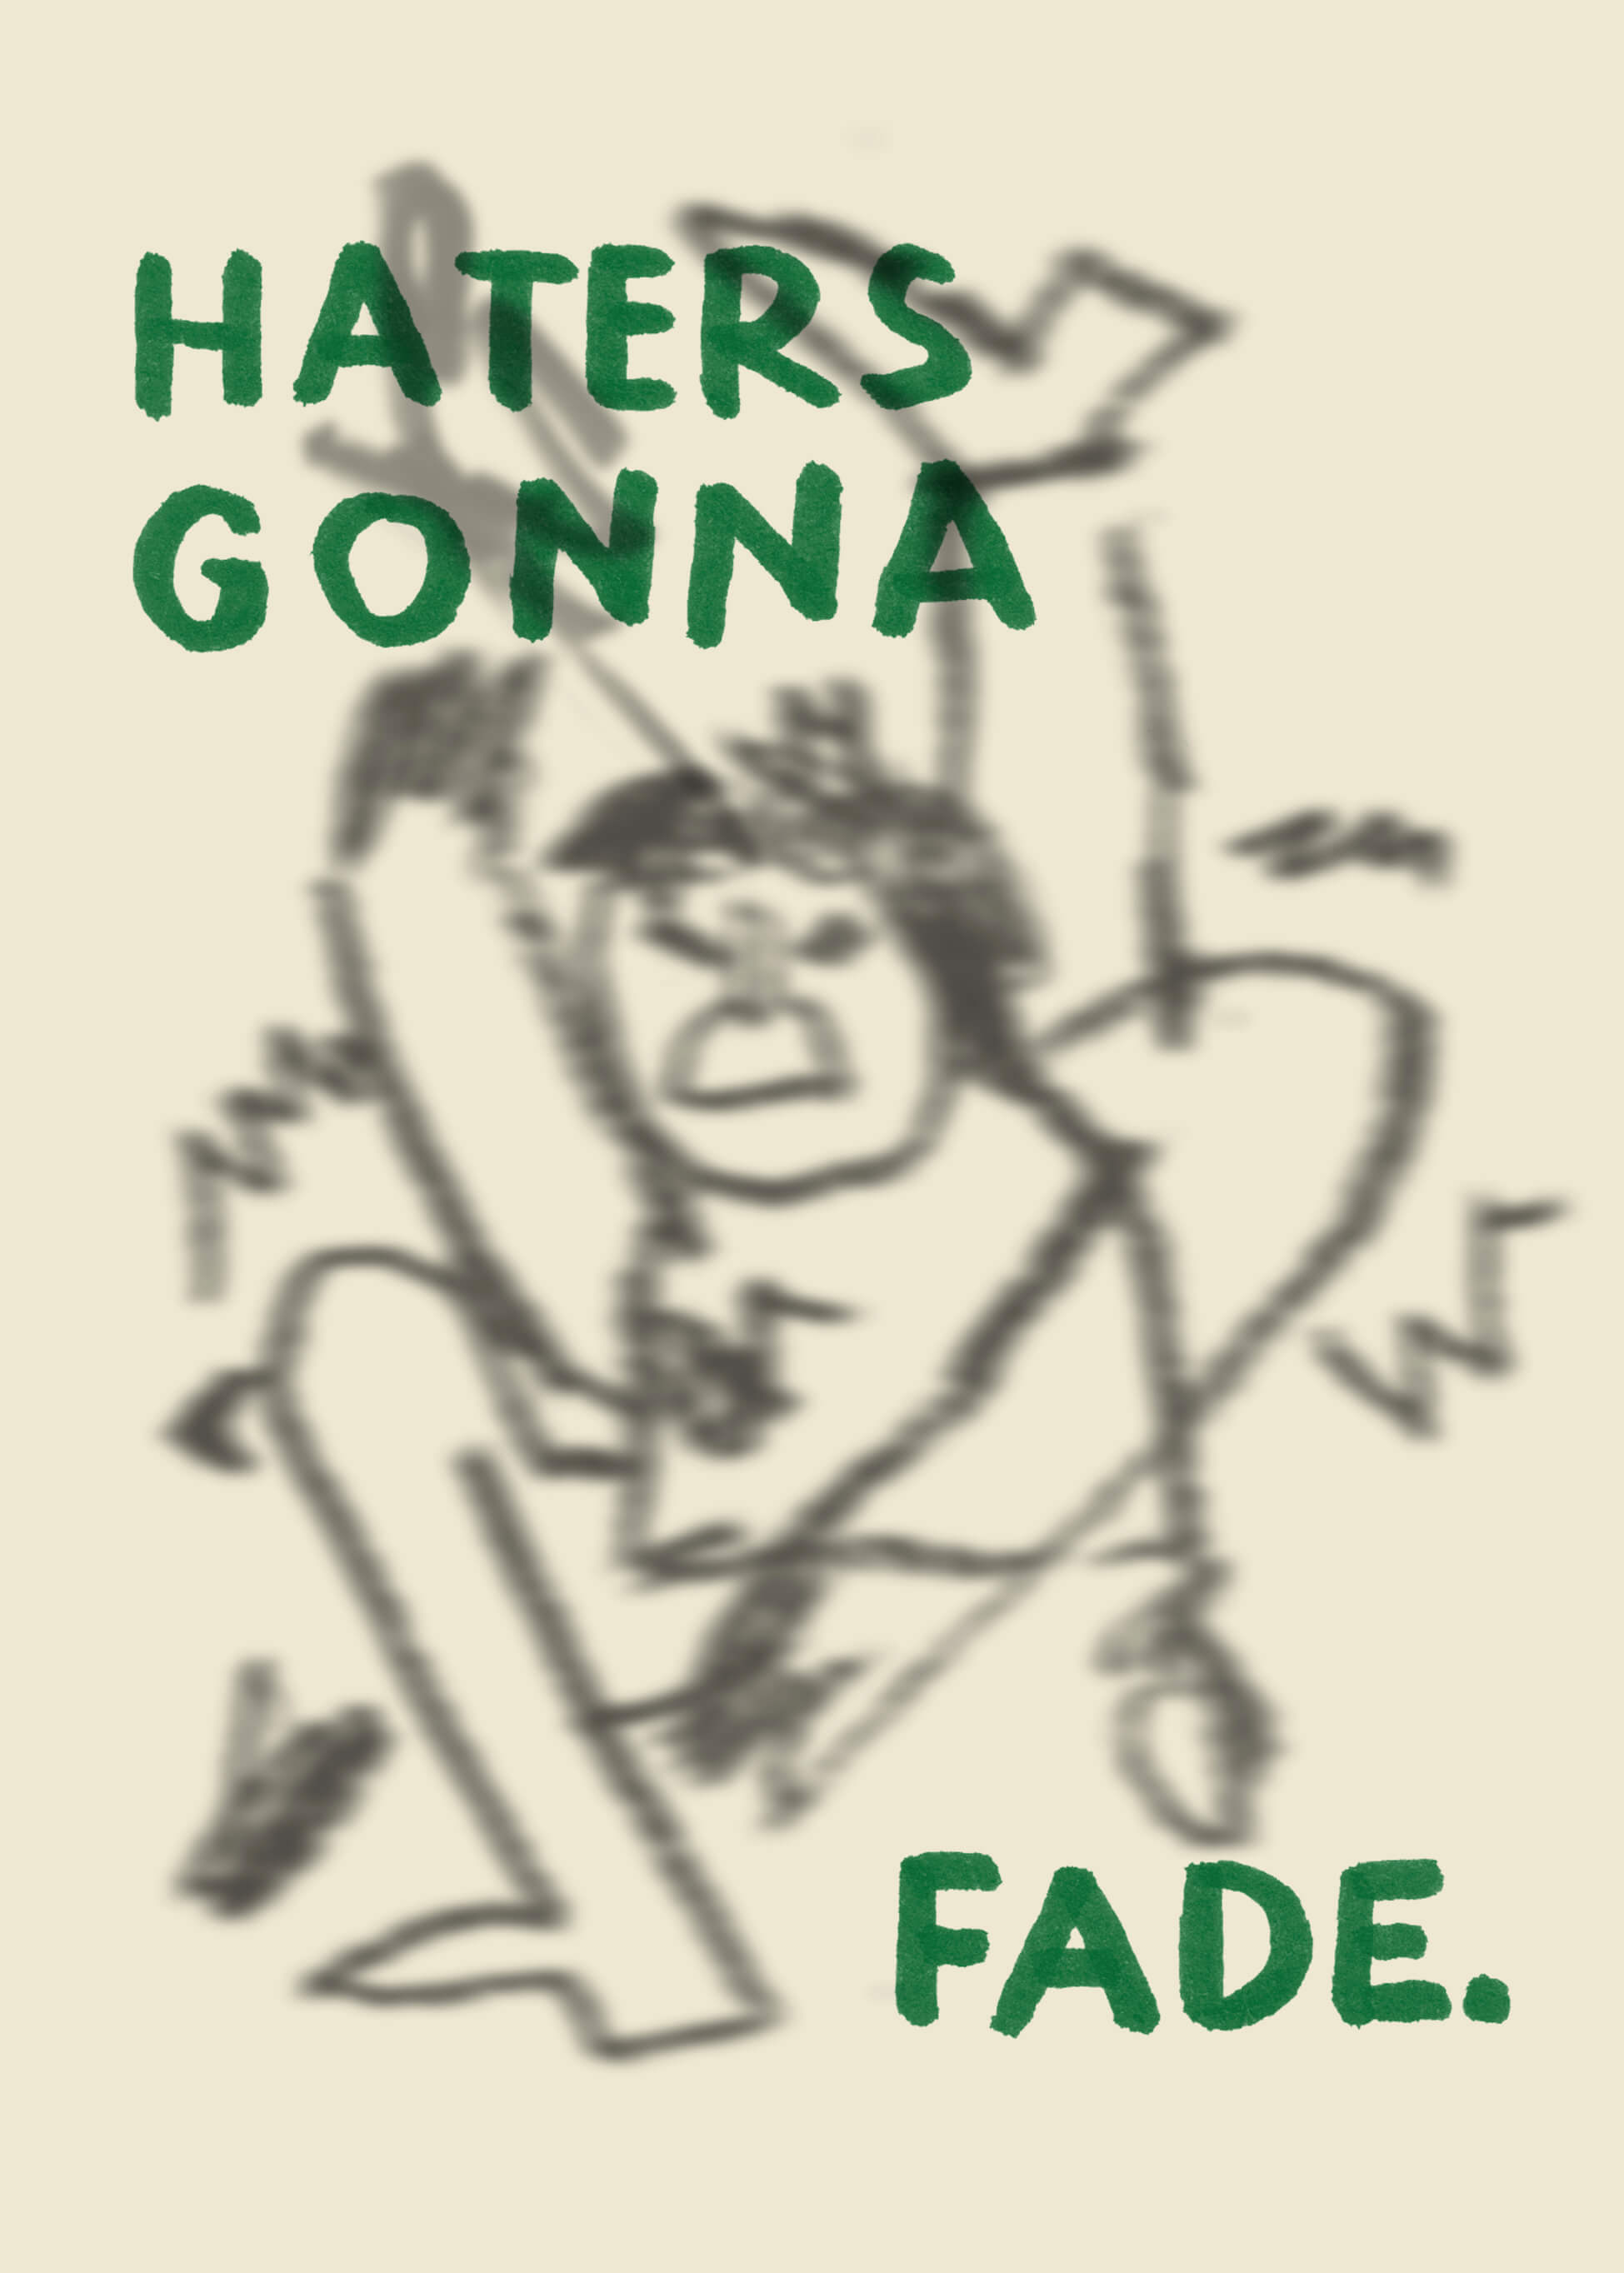 Haters Gonna Fade (series 1/2) main image